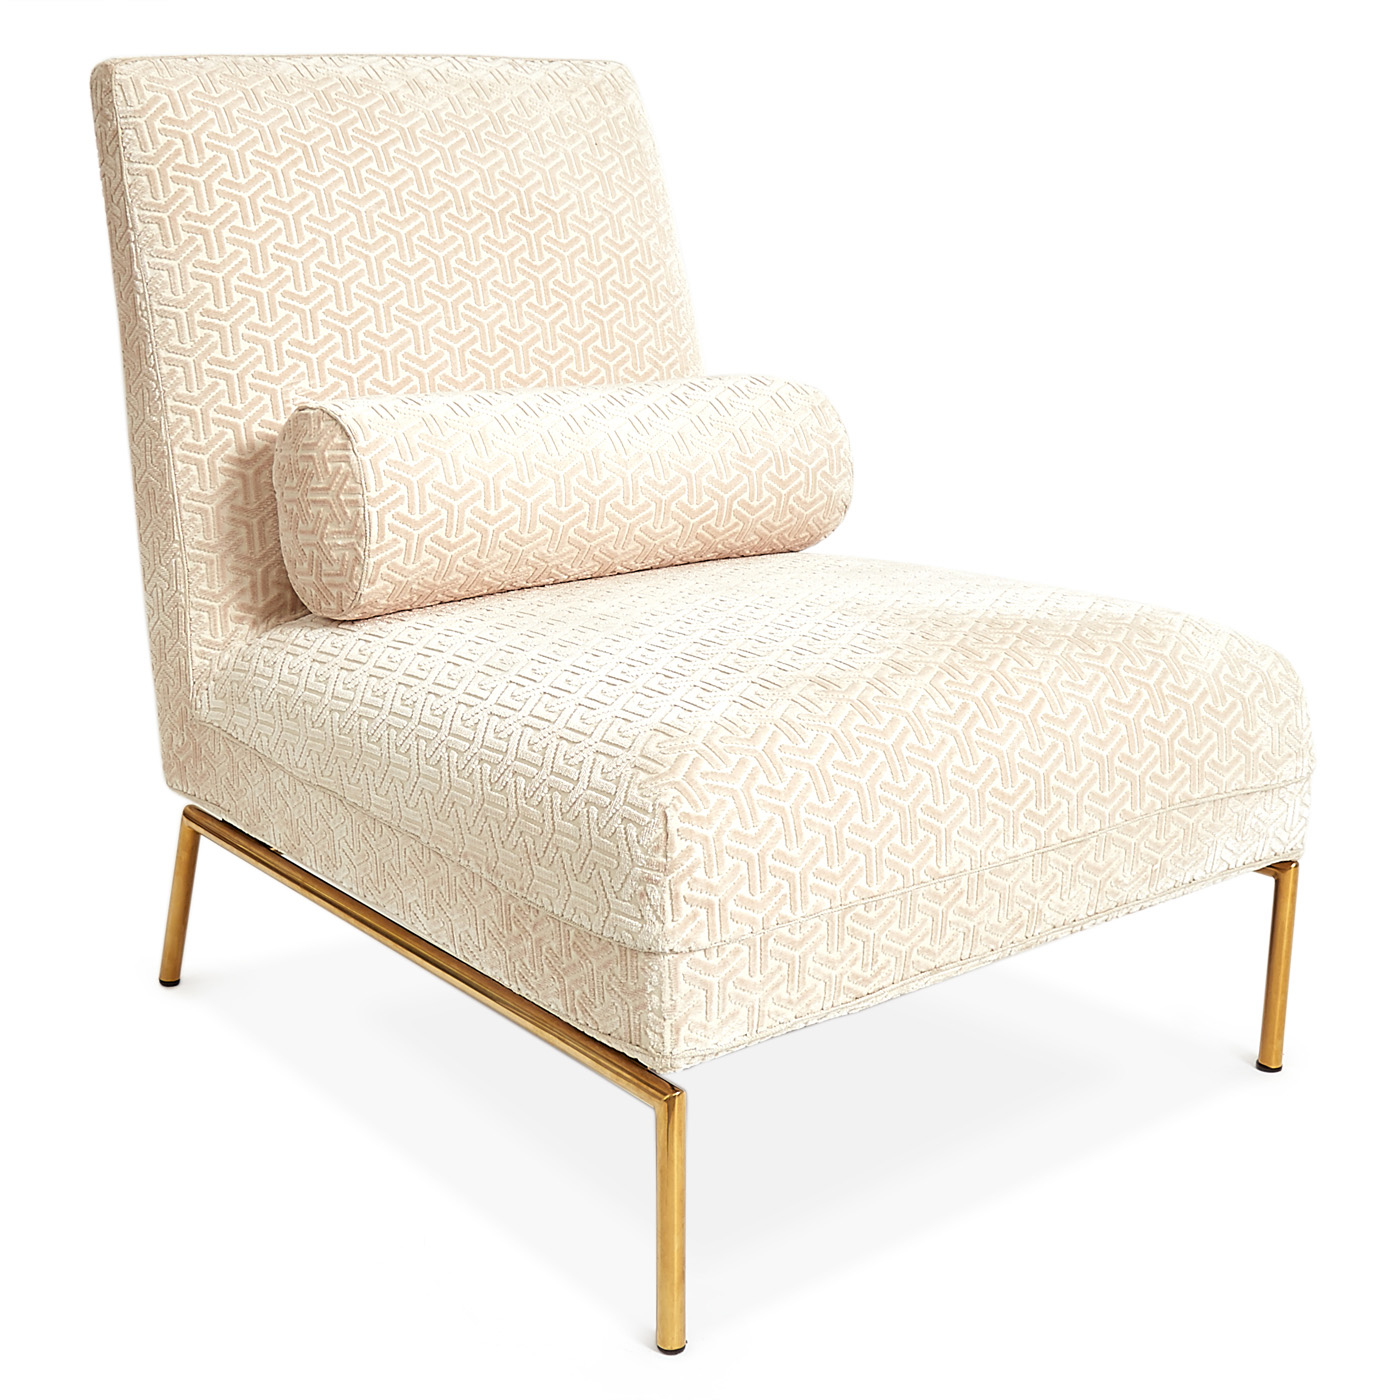 astor slipper chair QQHKAZX